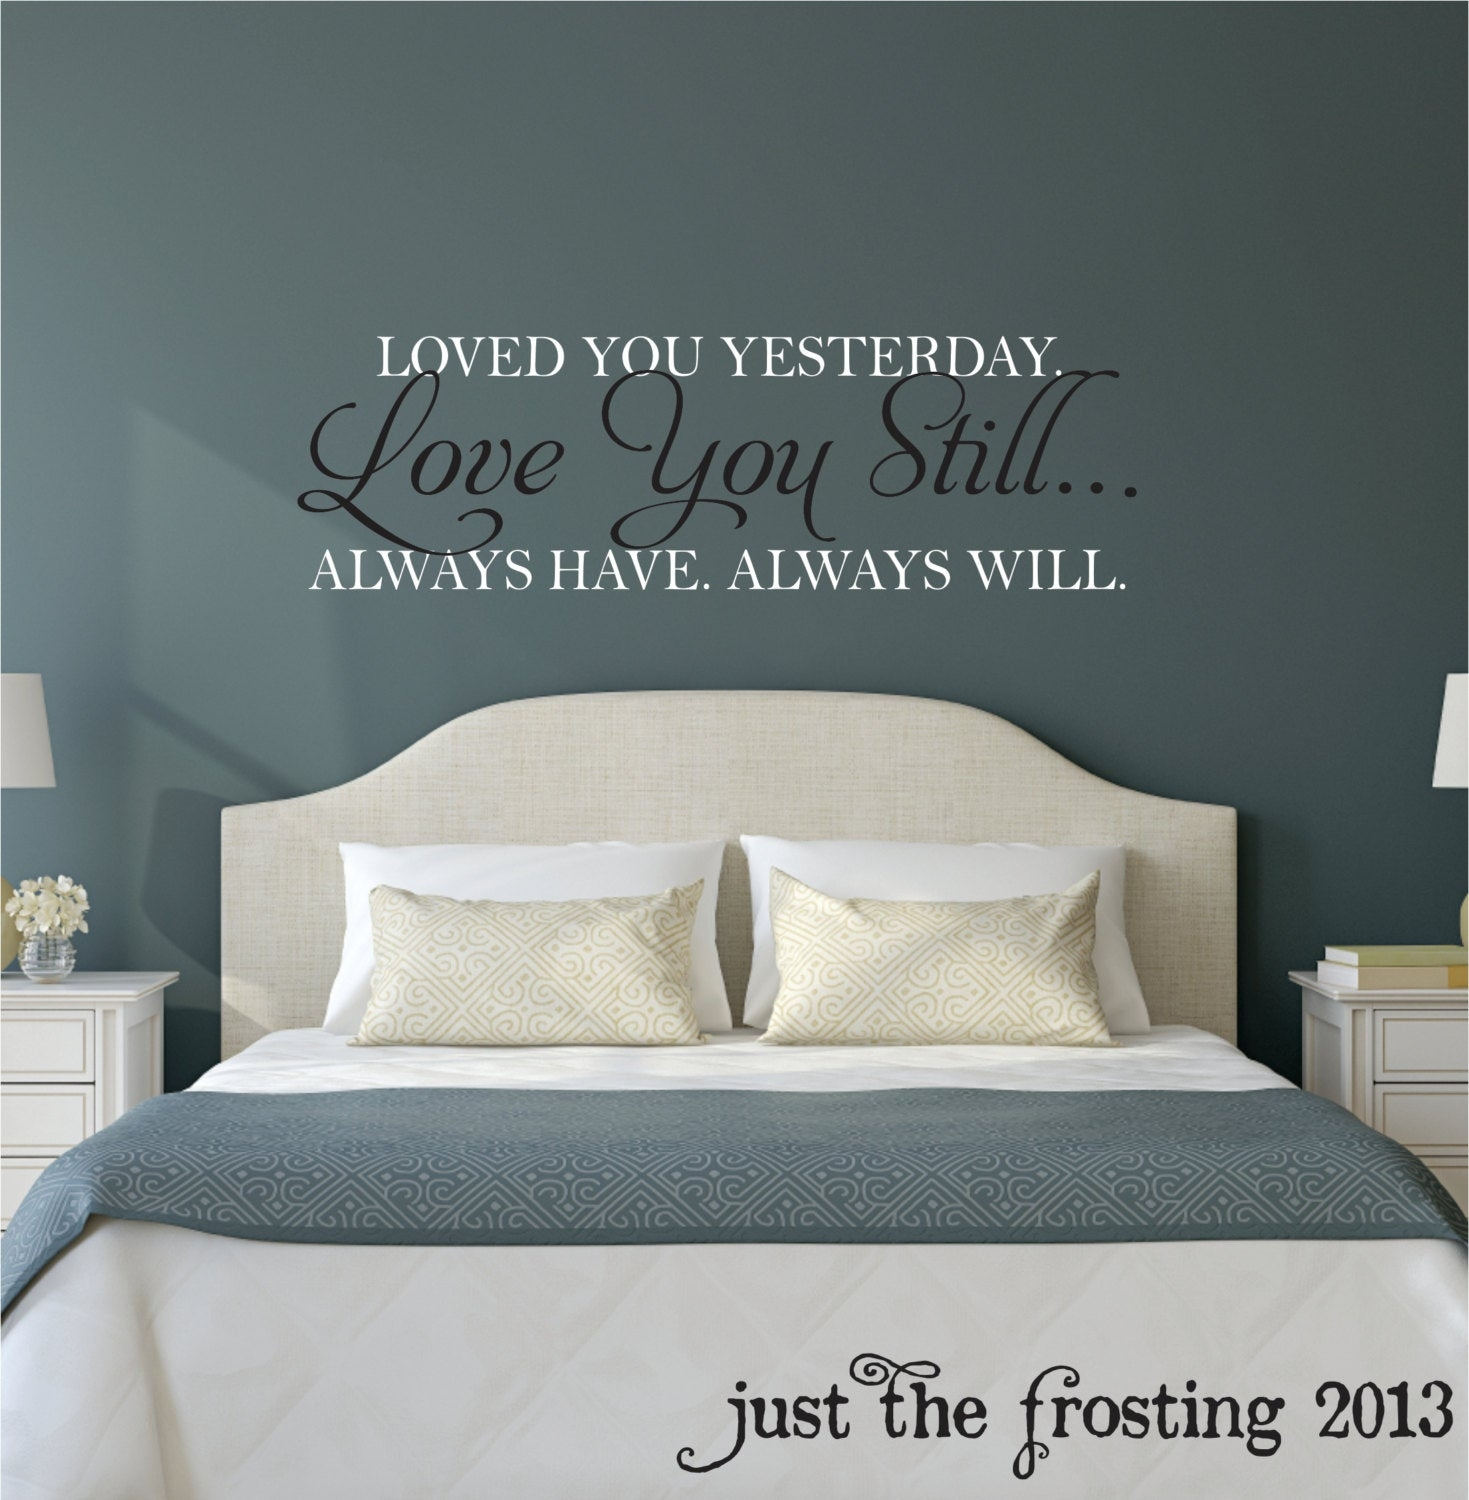 Love You Still Master Bedroom Wall Decal Vinyl Wall Quote